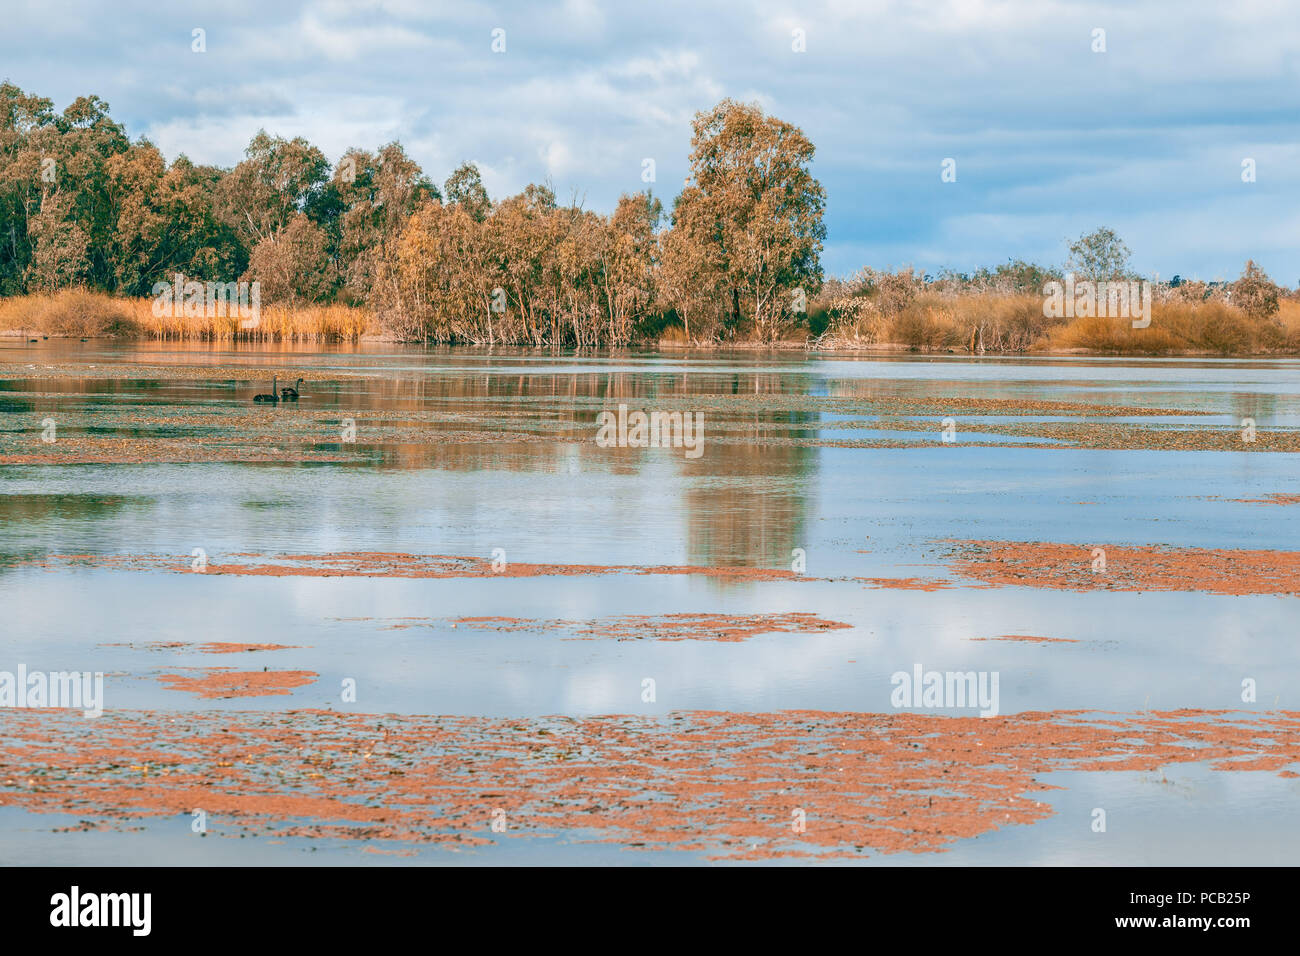 Beautiful nature reserve on Murray RIver at Banrock Station, Riverland, South Australia - Stock Image